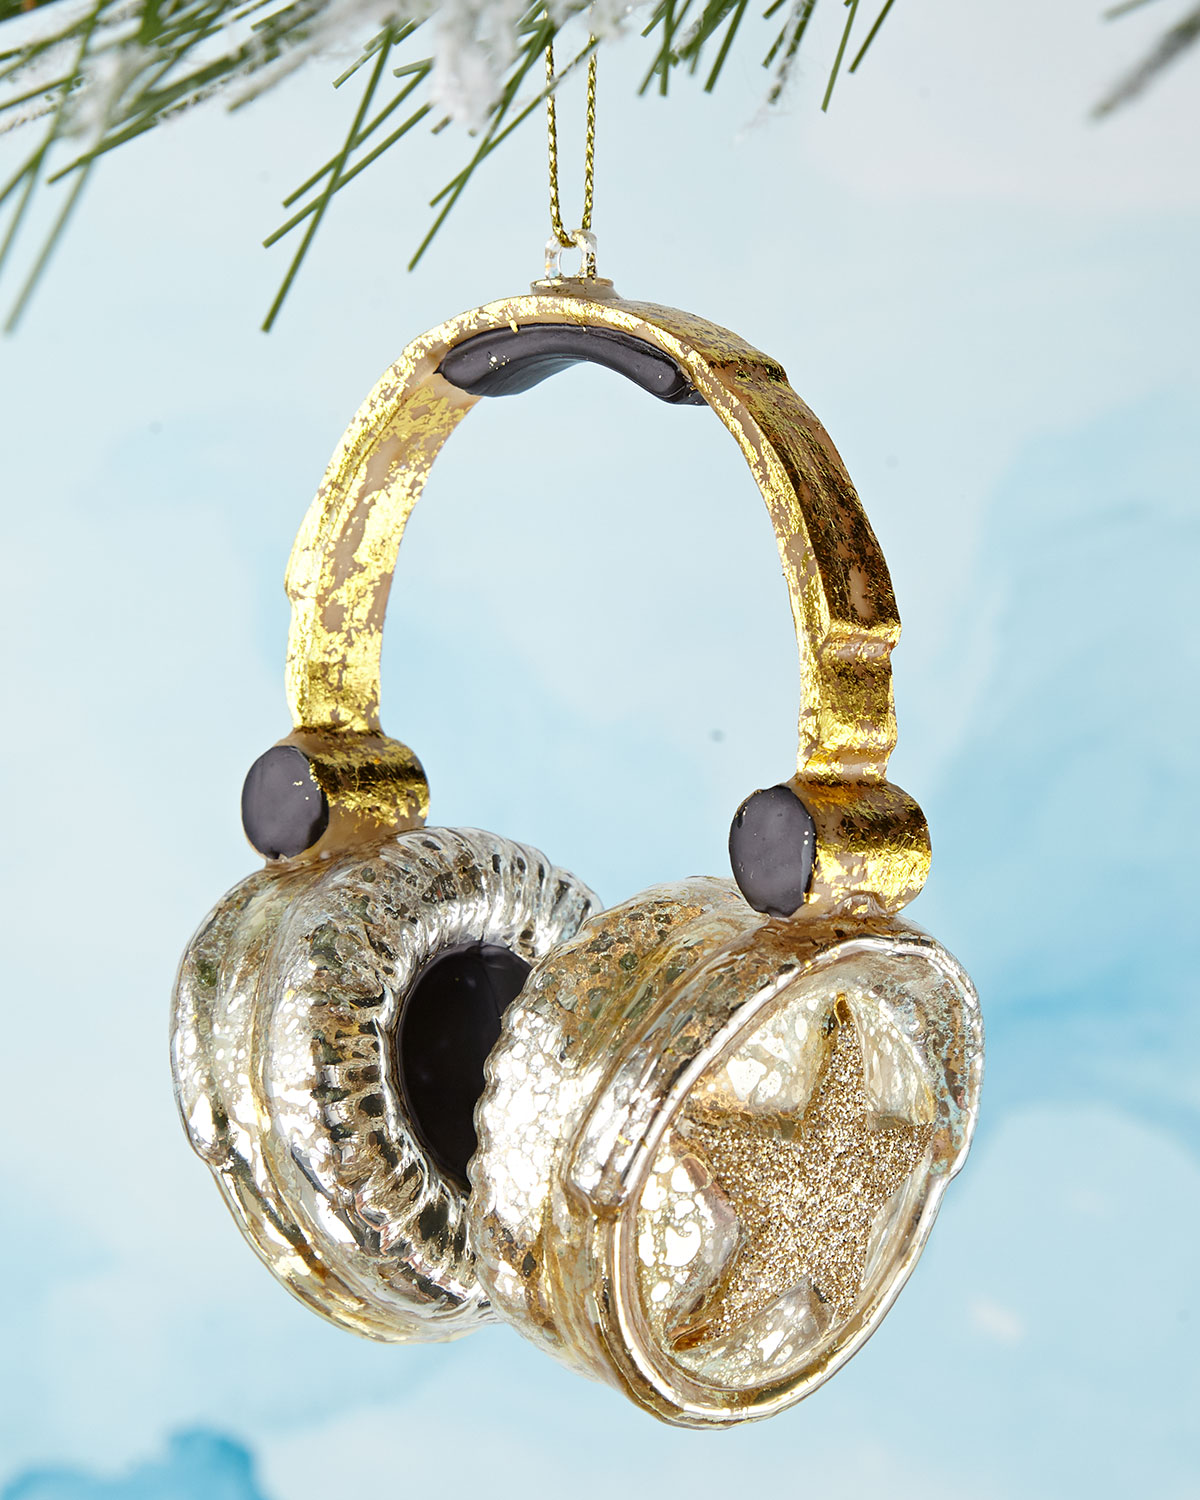 Gold Headphones Christmas Ornament by Cody Foster & Co